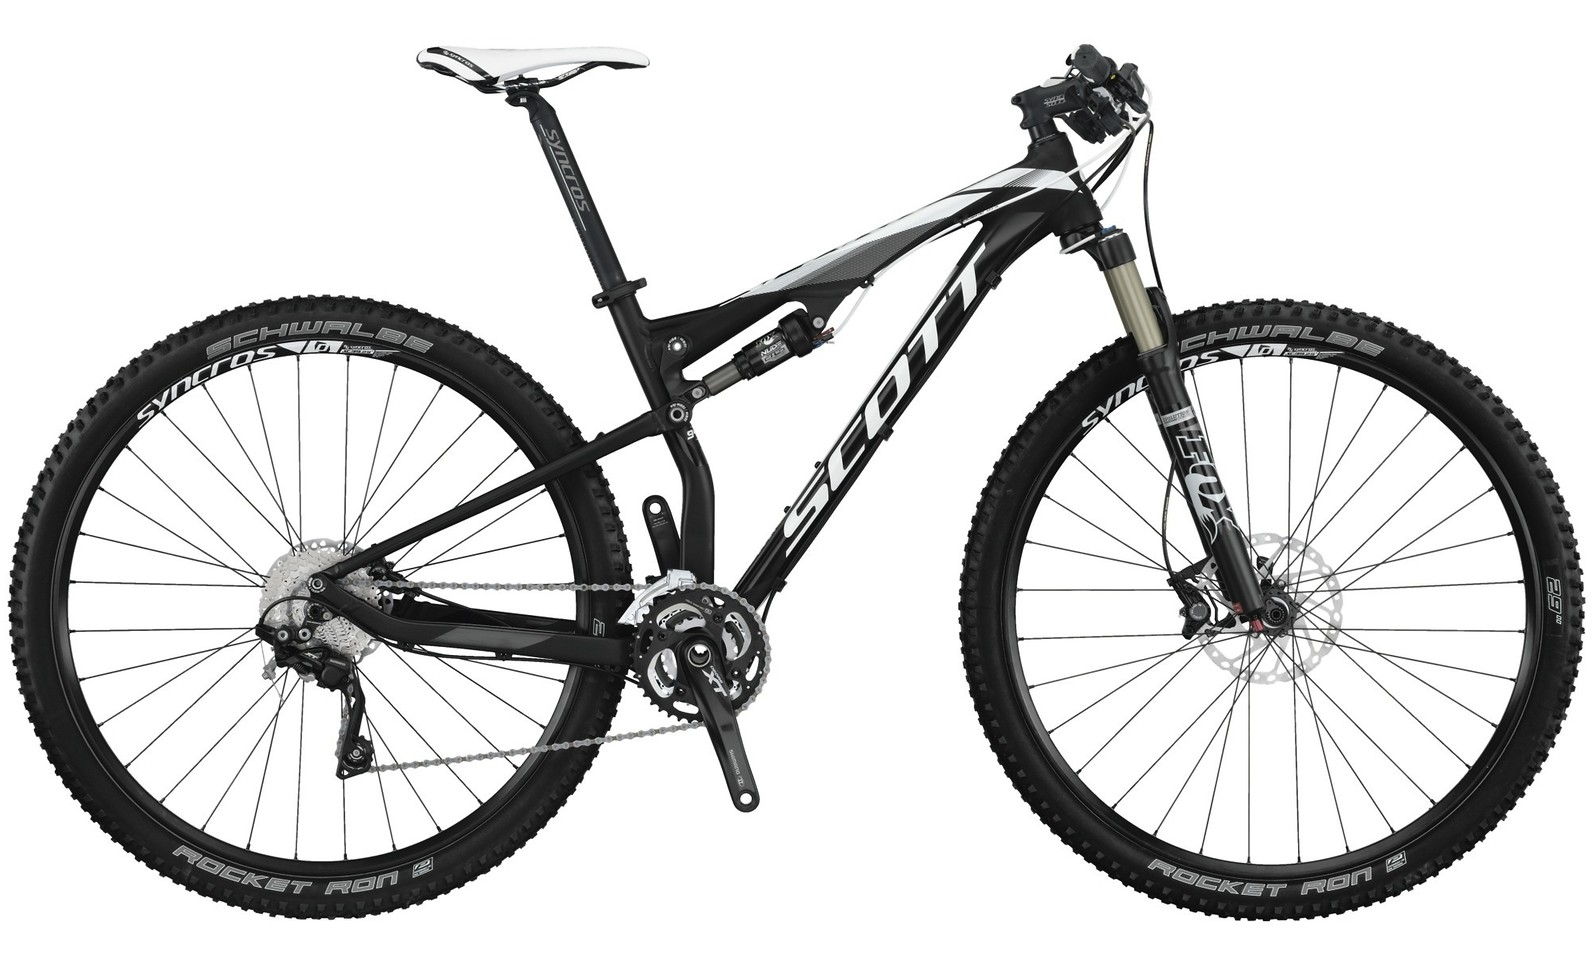 2014 Scott Spark 940 Bike Reviews Comparisons Specs